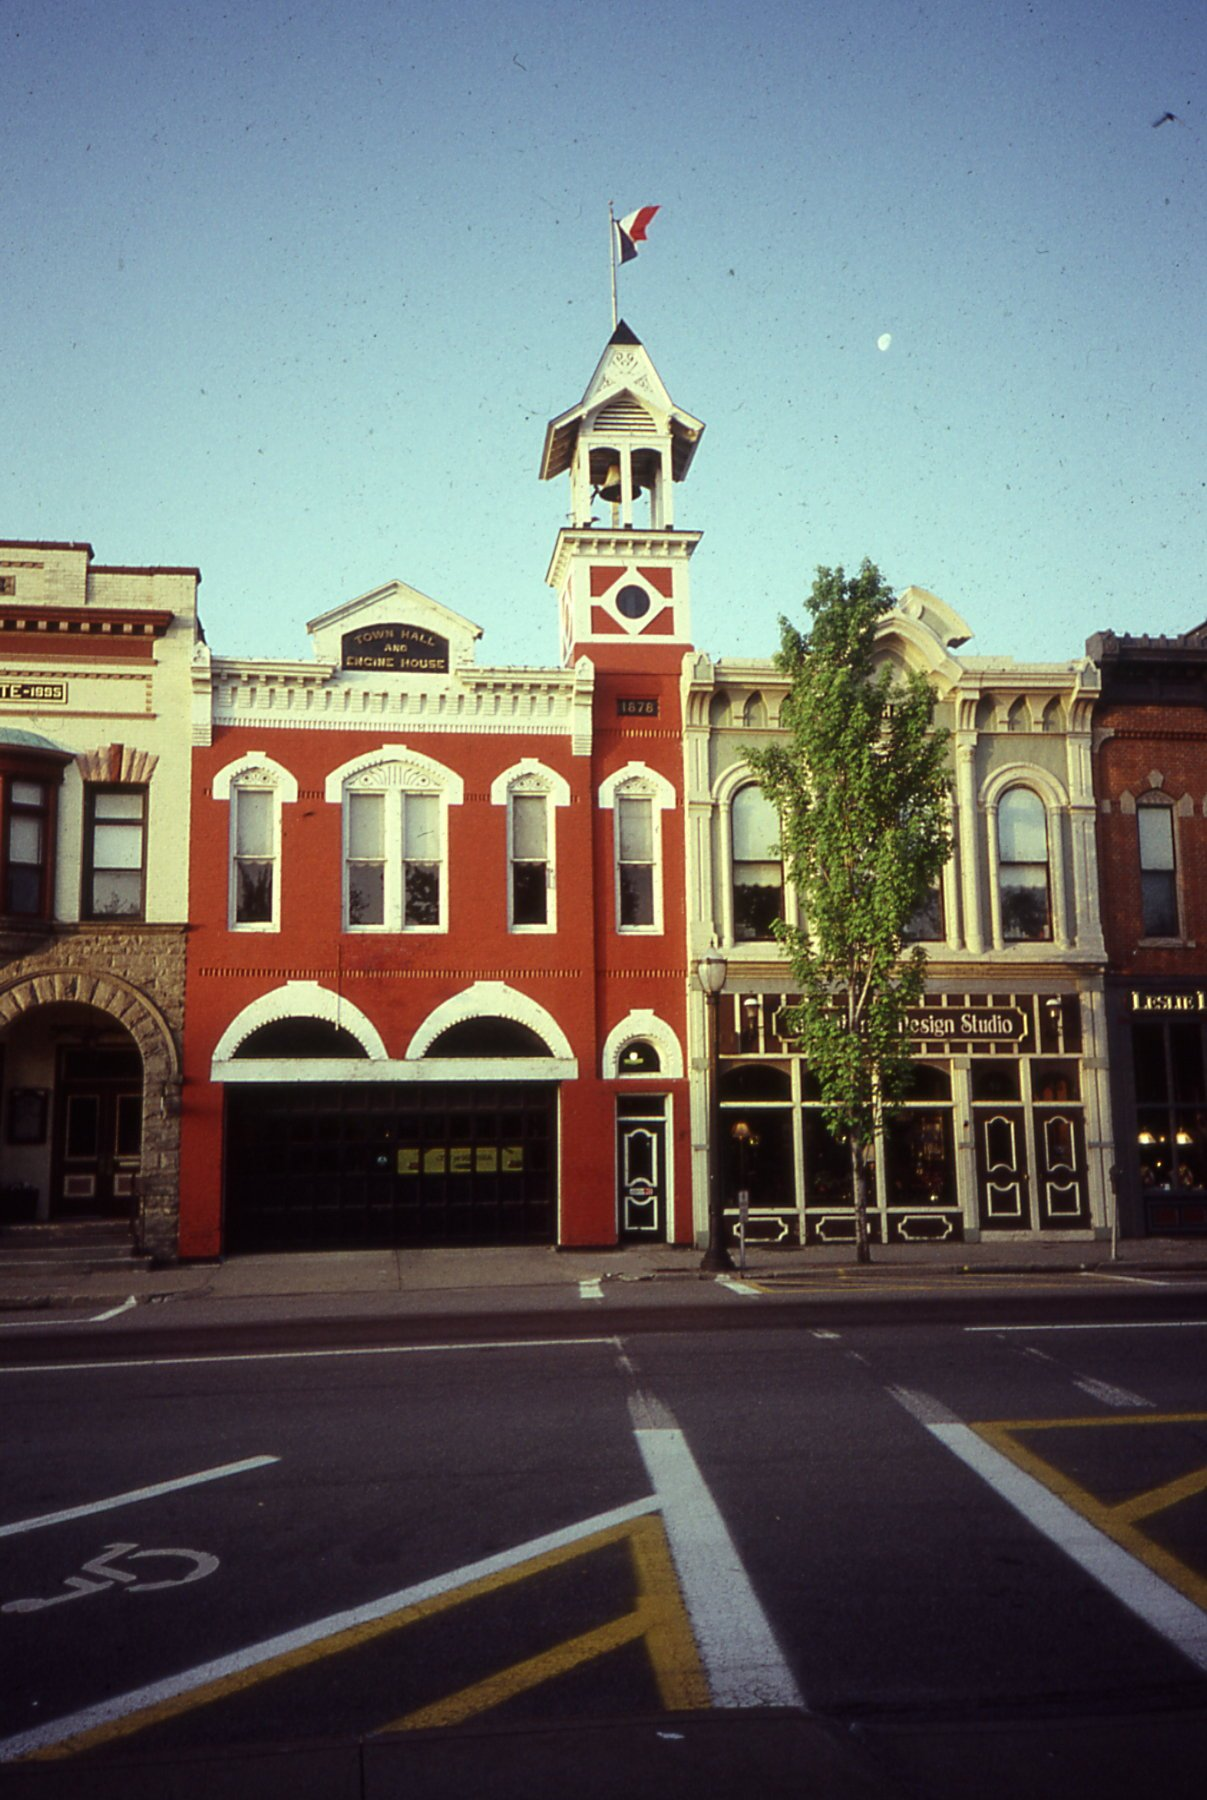 Medina Fire station restored to its original beauty